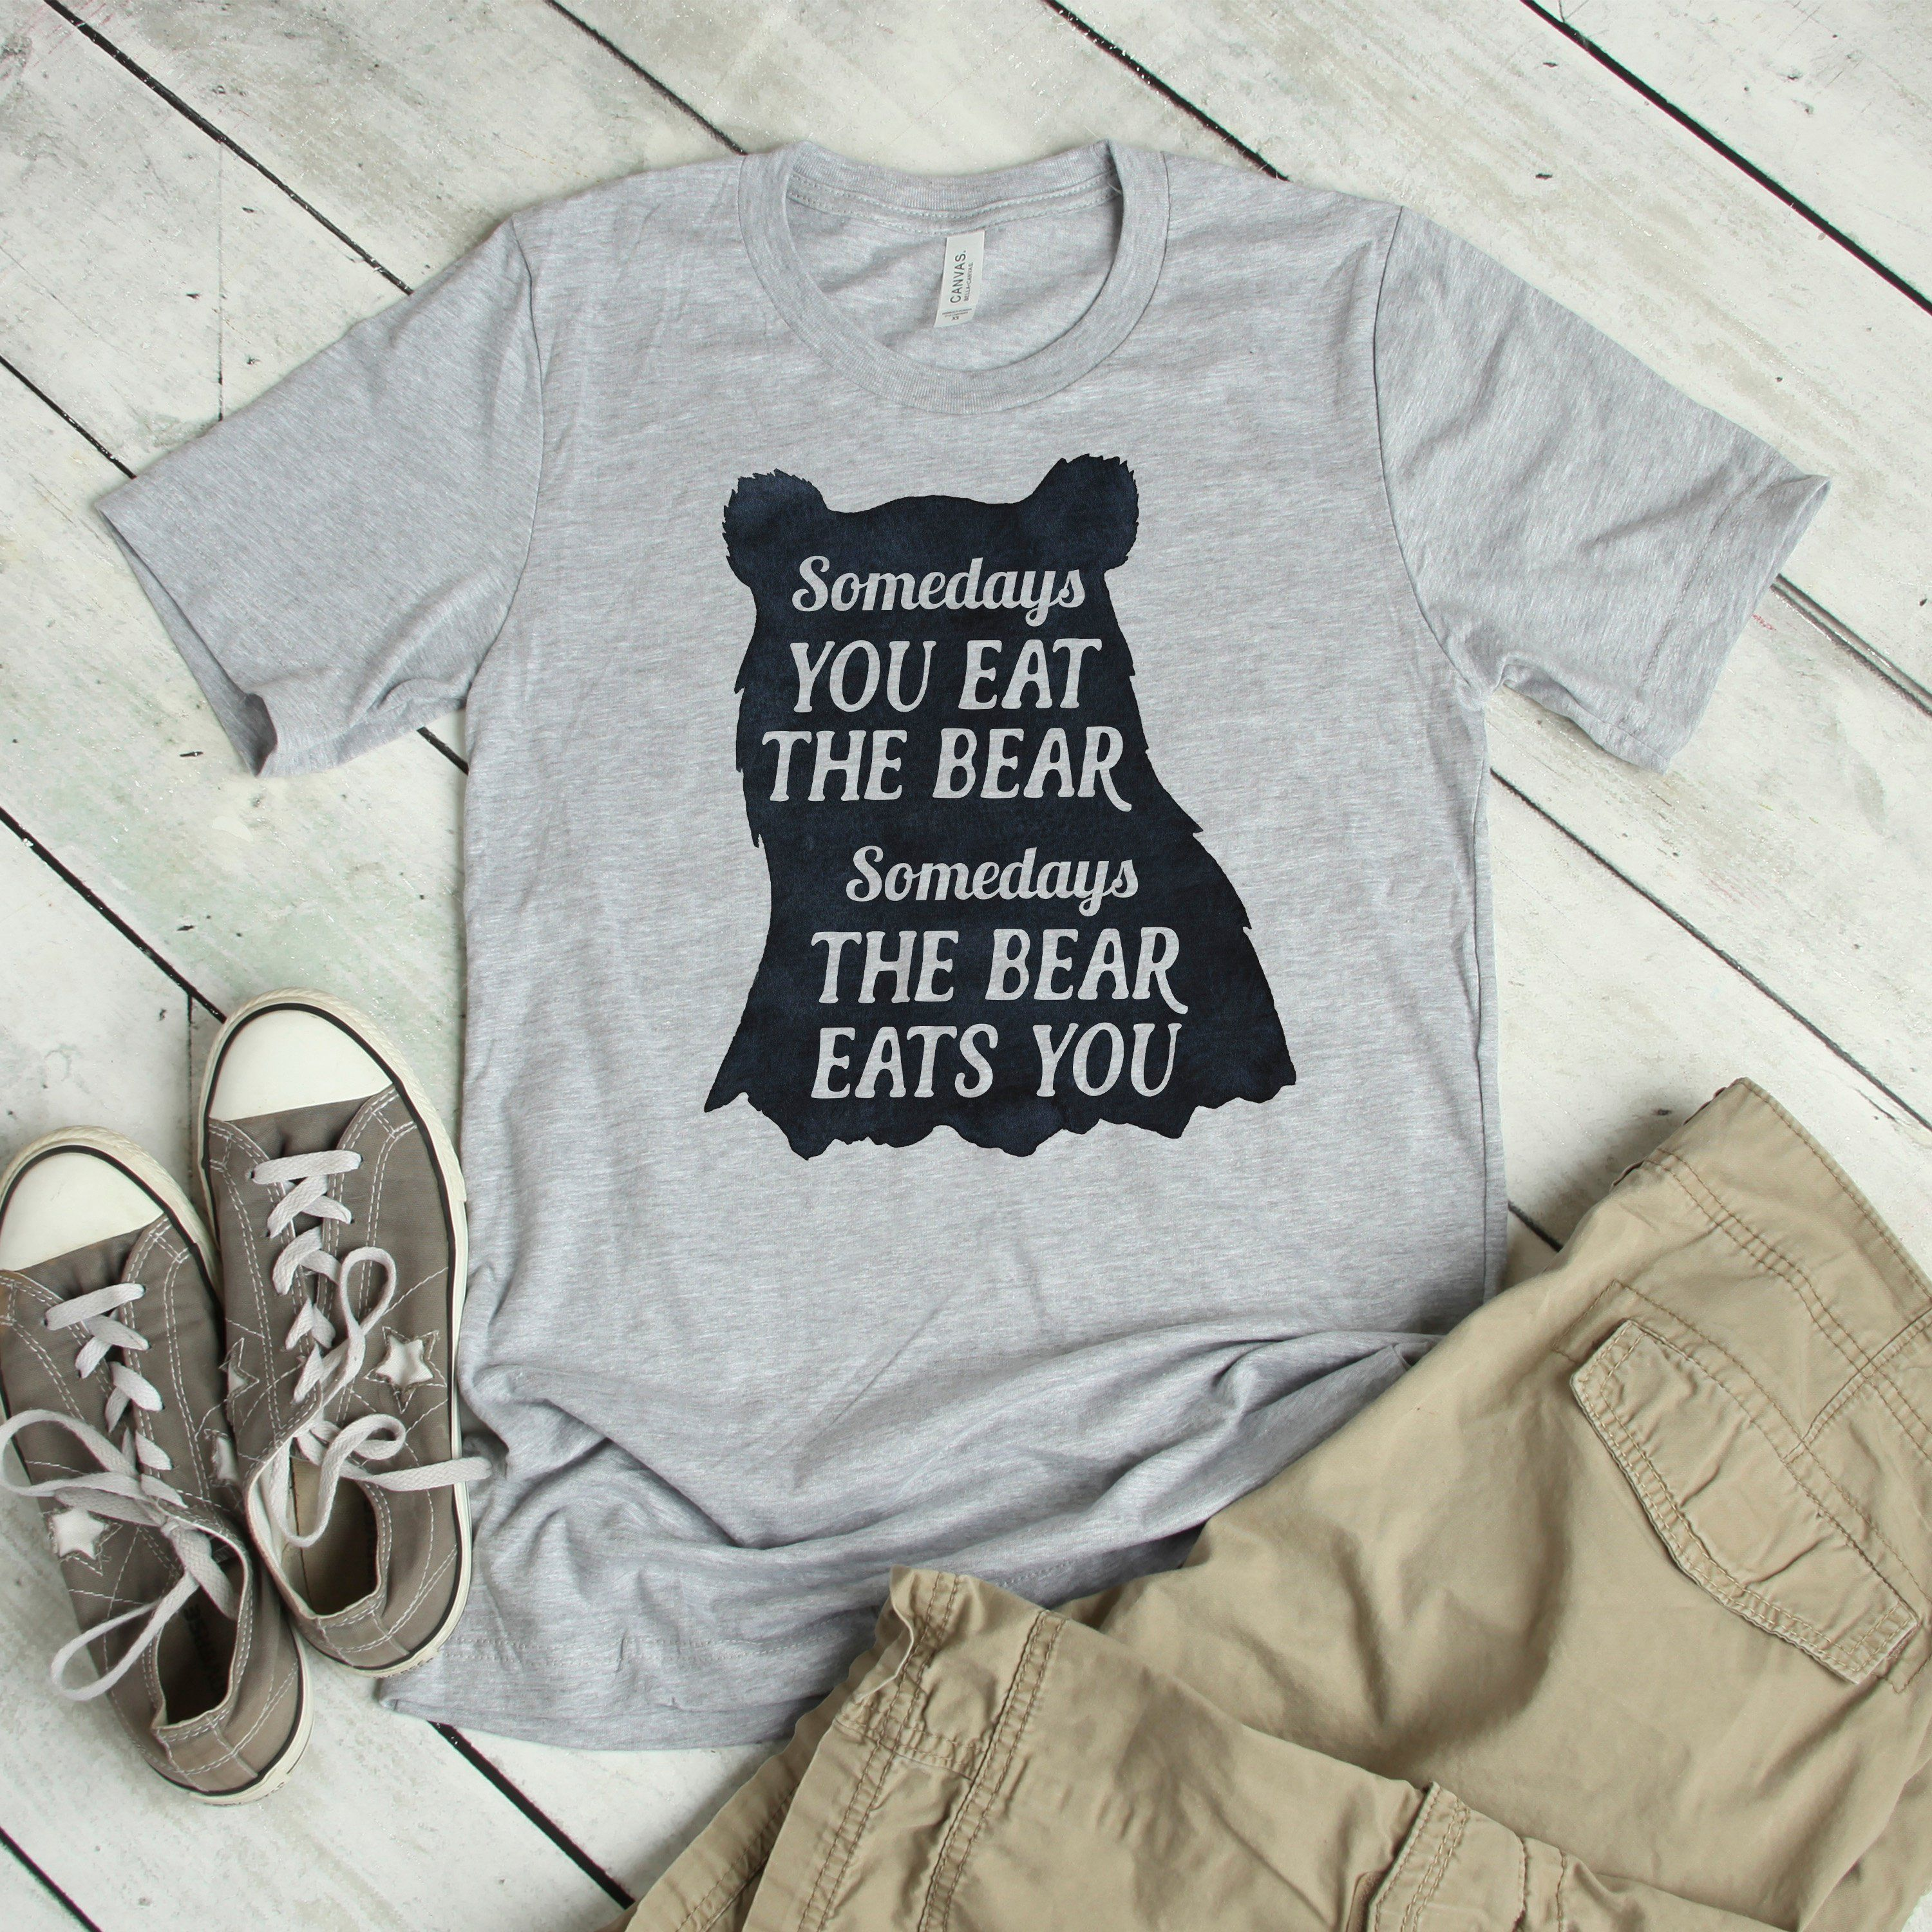 038f36e14 Funny Mens Graphic Tee - Vintage Looking Grizzly Bear Silhouette  Motivational Quote Shirt